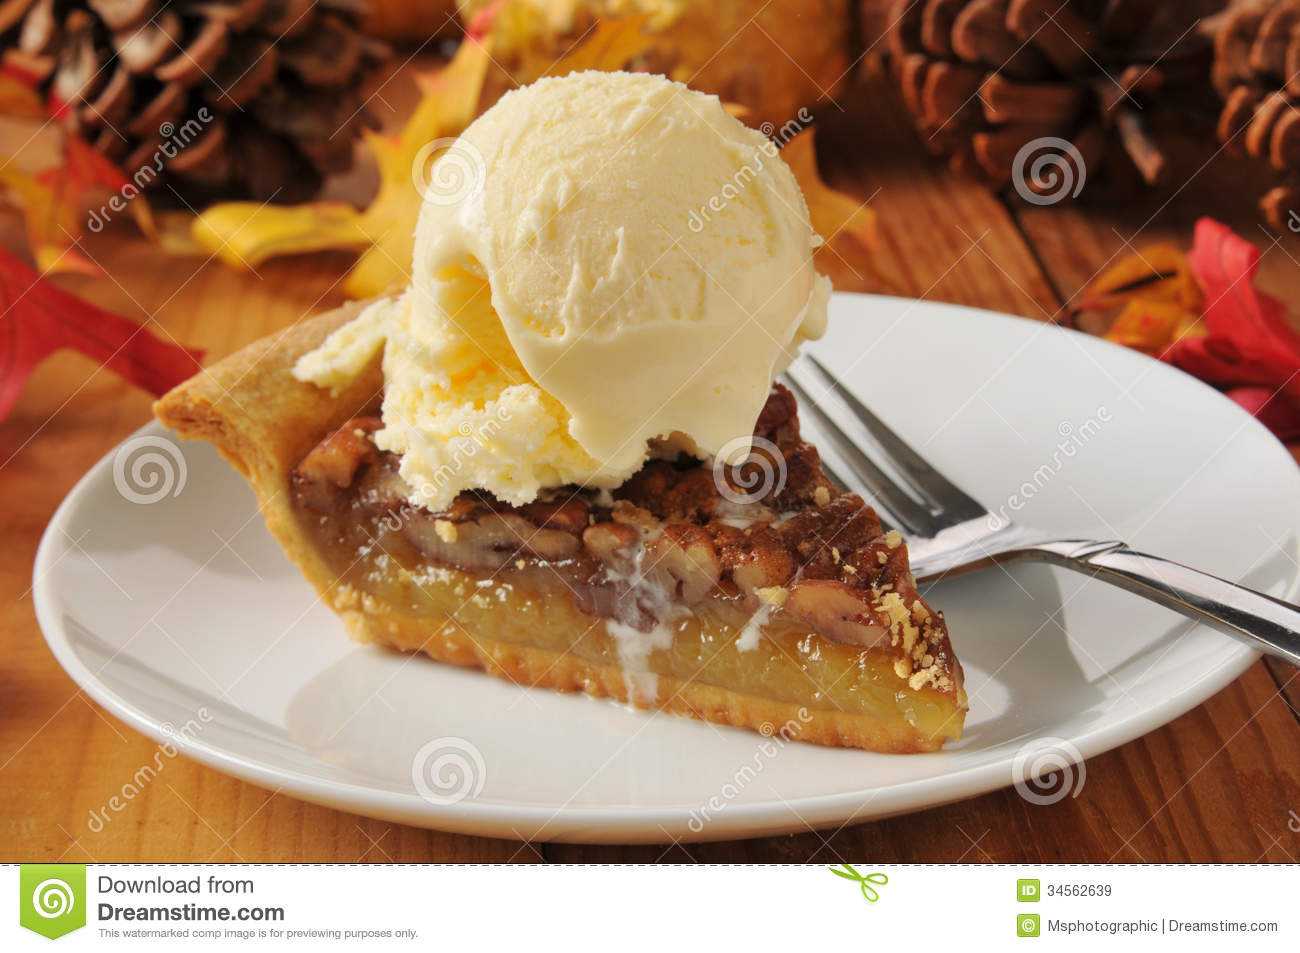 Pecan pie a la mode stock image. Image of gourds, colorful ...